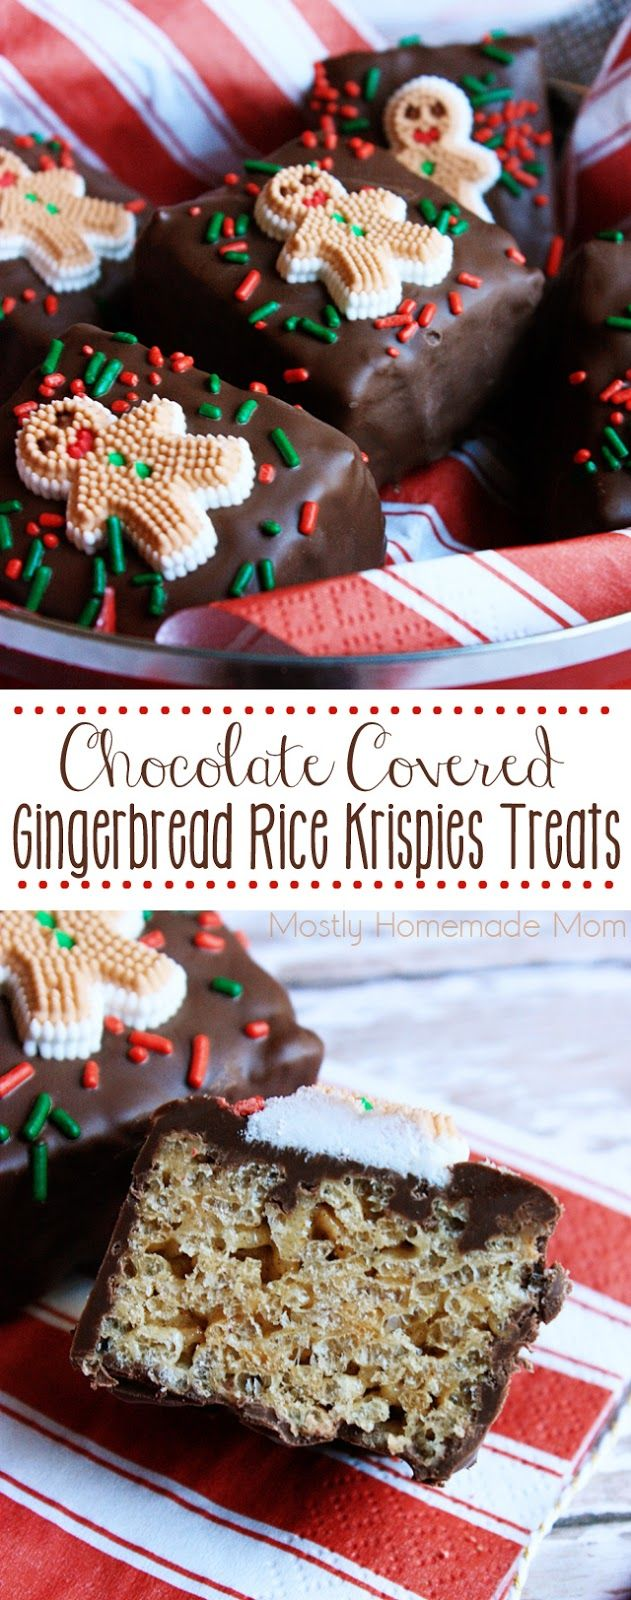 Chocolate Covered Gingerbread Rice Krispies Treats - Gingerbread cake mix and cinnamon are added to the classic Rice Krispies Treats® recipe, covered in chocolate and decorated with Christmas sprinkles - these are the perfect dessert for gift giving! @ricekrispiesusa #ad